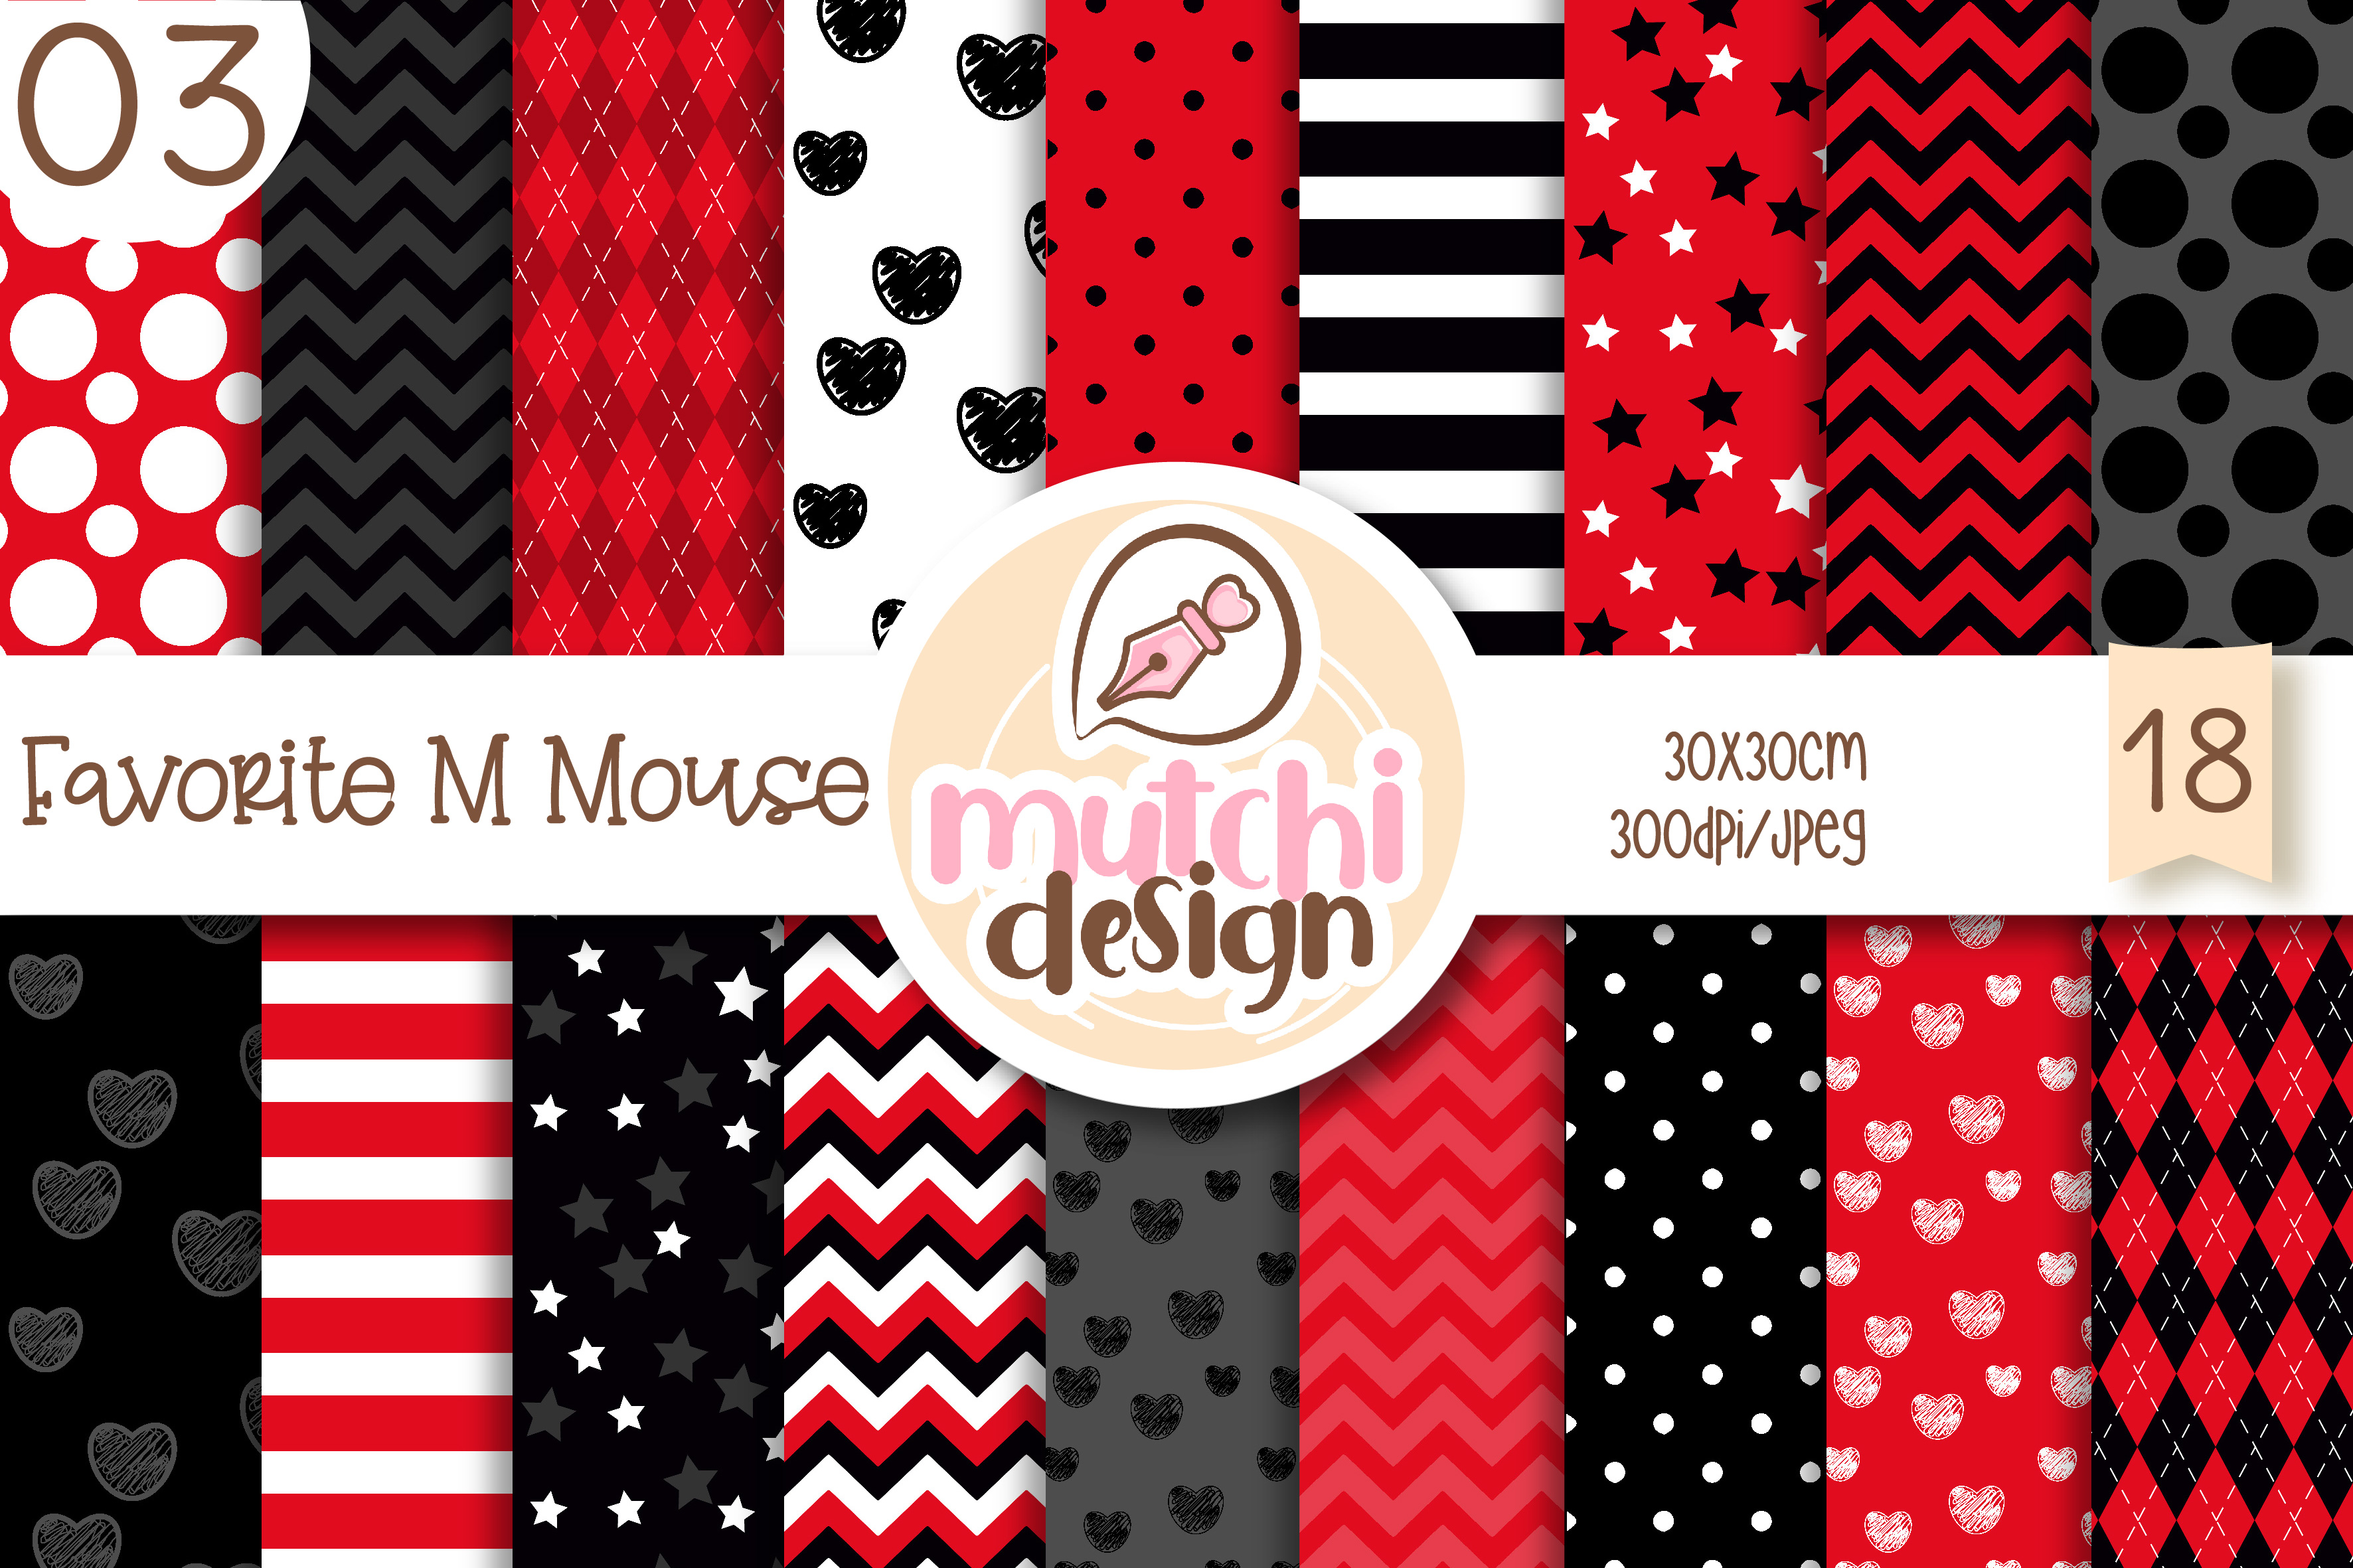 Download Free Favorite M Mouse 03 Digital Papers Graphic By Mutchi Design for Cricut Explore, Silhouette and other cutting machines.